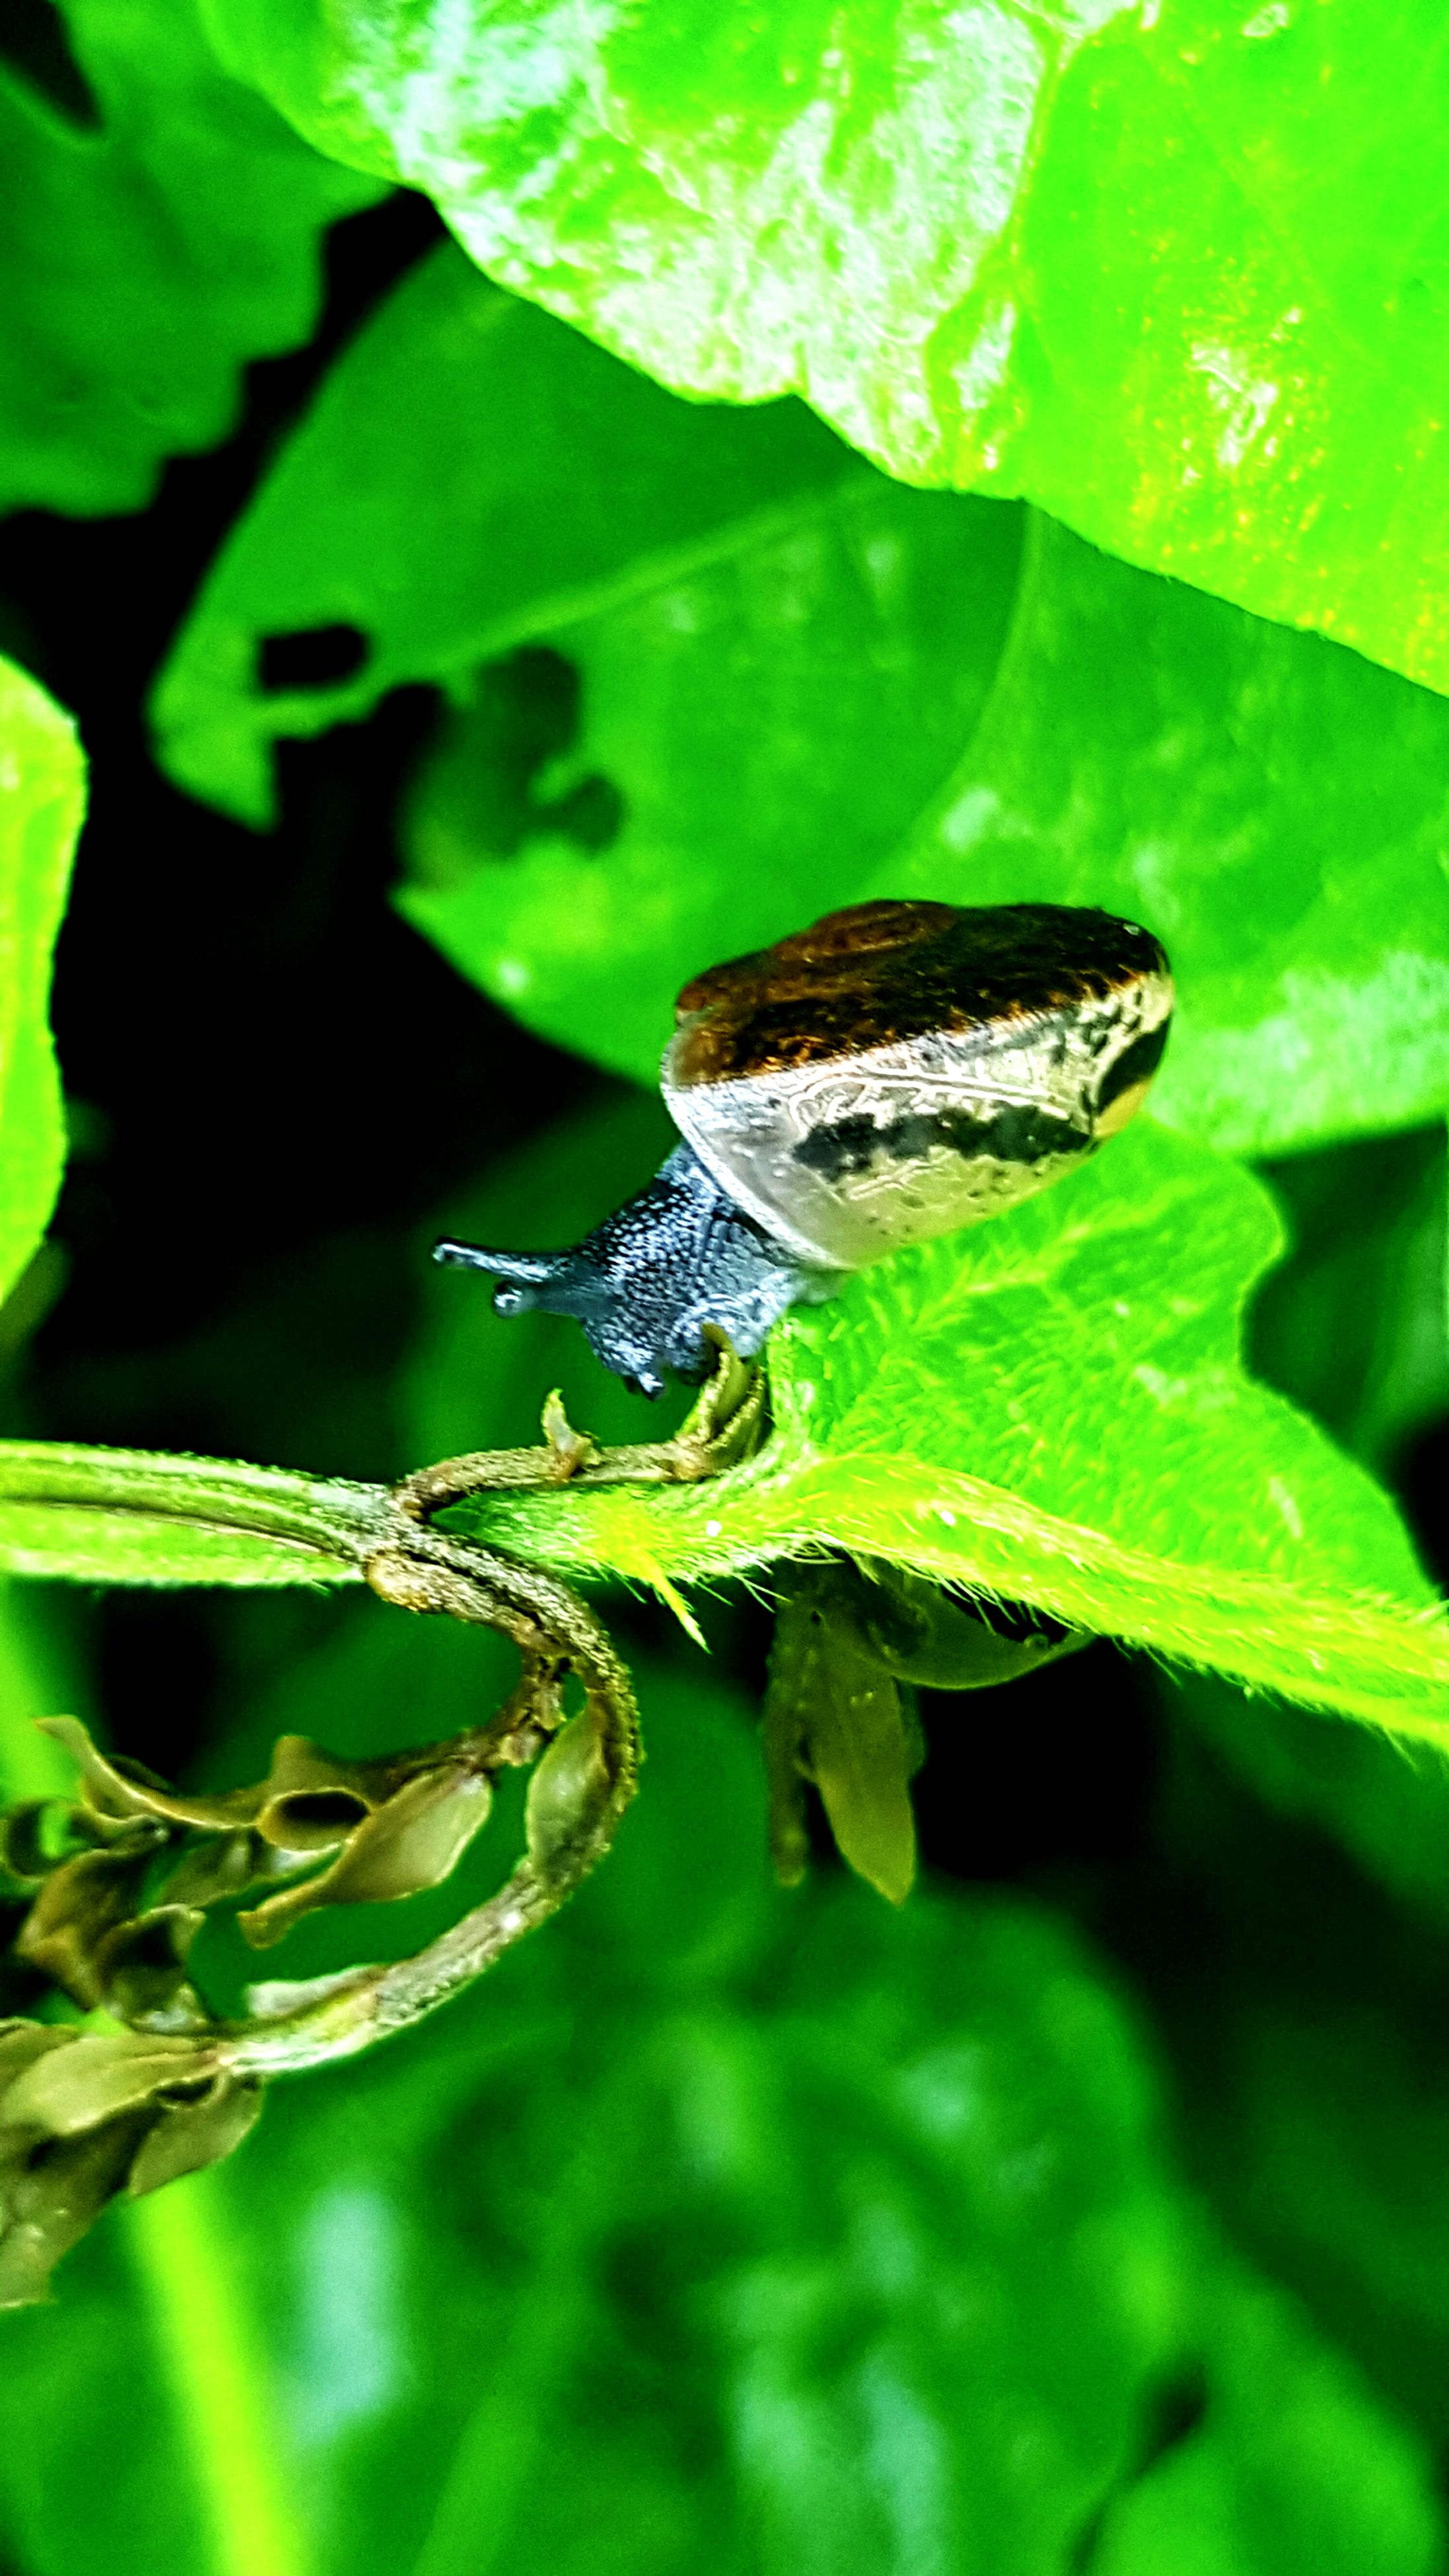 animal themes, wildlife, leaf, green color, close-up, nature, plant, focus on foreground, amphibian, outdoors, day, beauty in nature, selective focus, no people, green, animal, animal antenna, growth